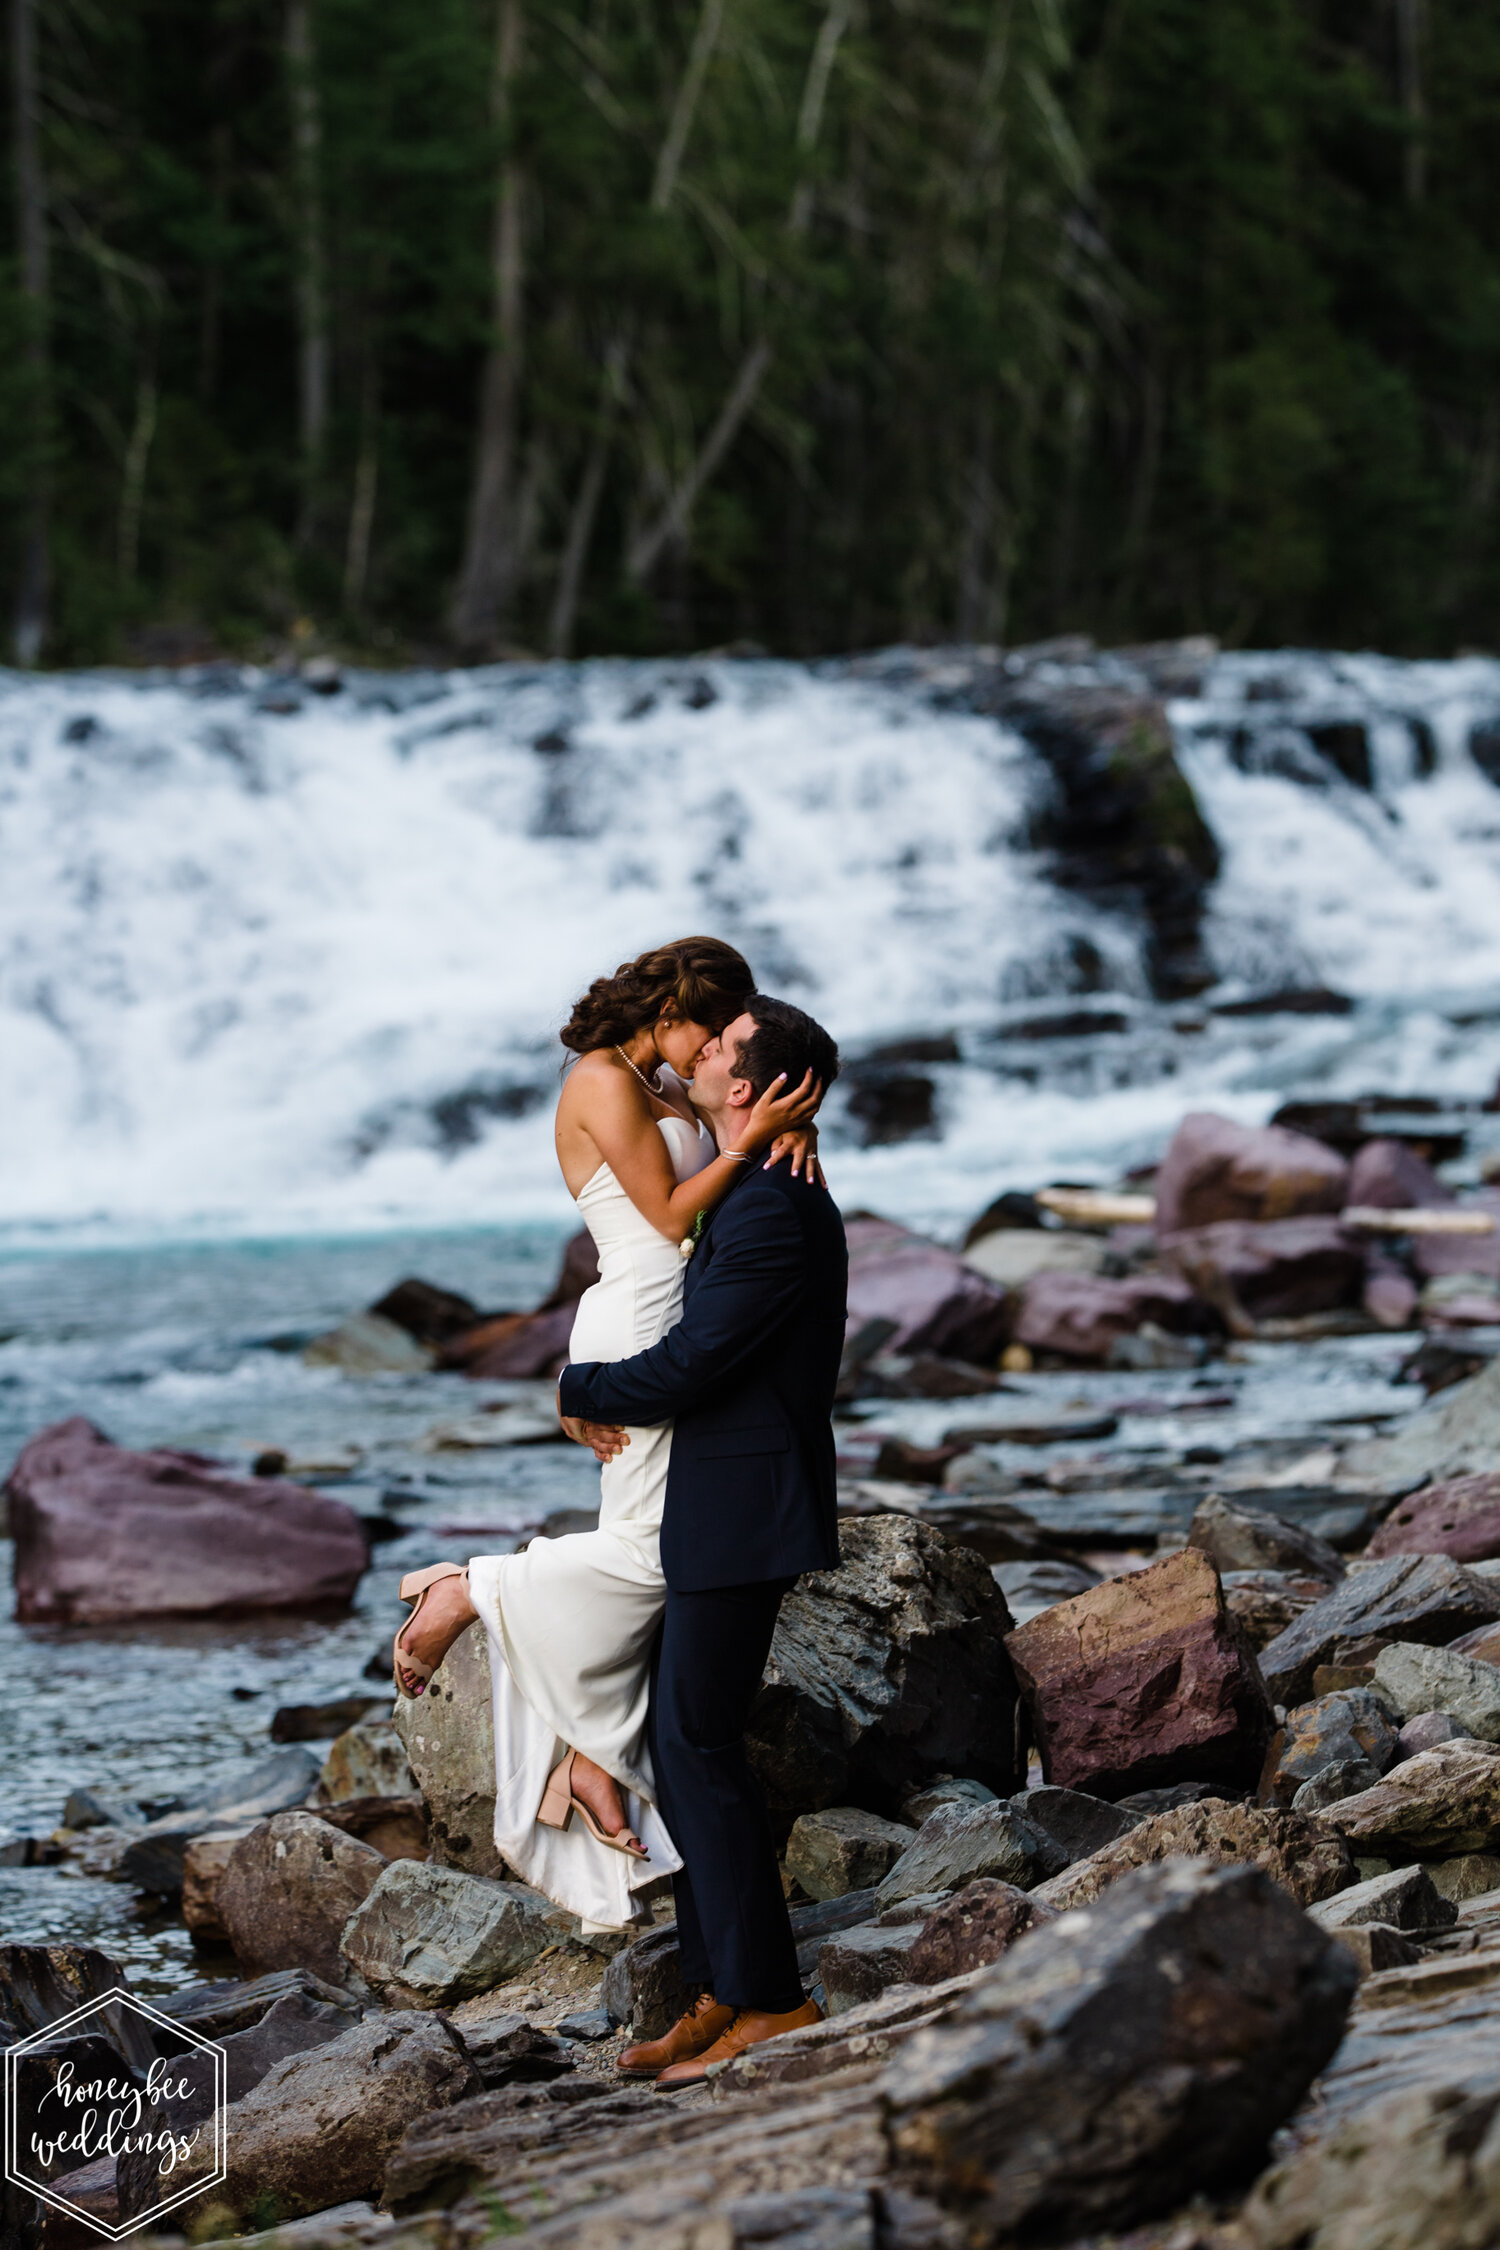 018Glacier National Park Wedding_Glacier Outdoor Center_Honeybee Weddings_Anna & Seth_July 21, 2019-1670.jpg